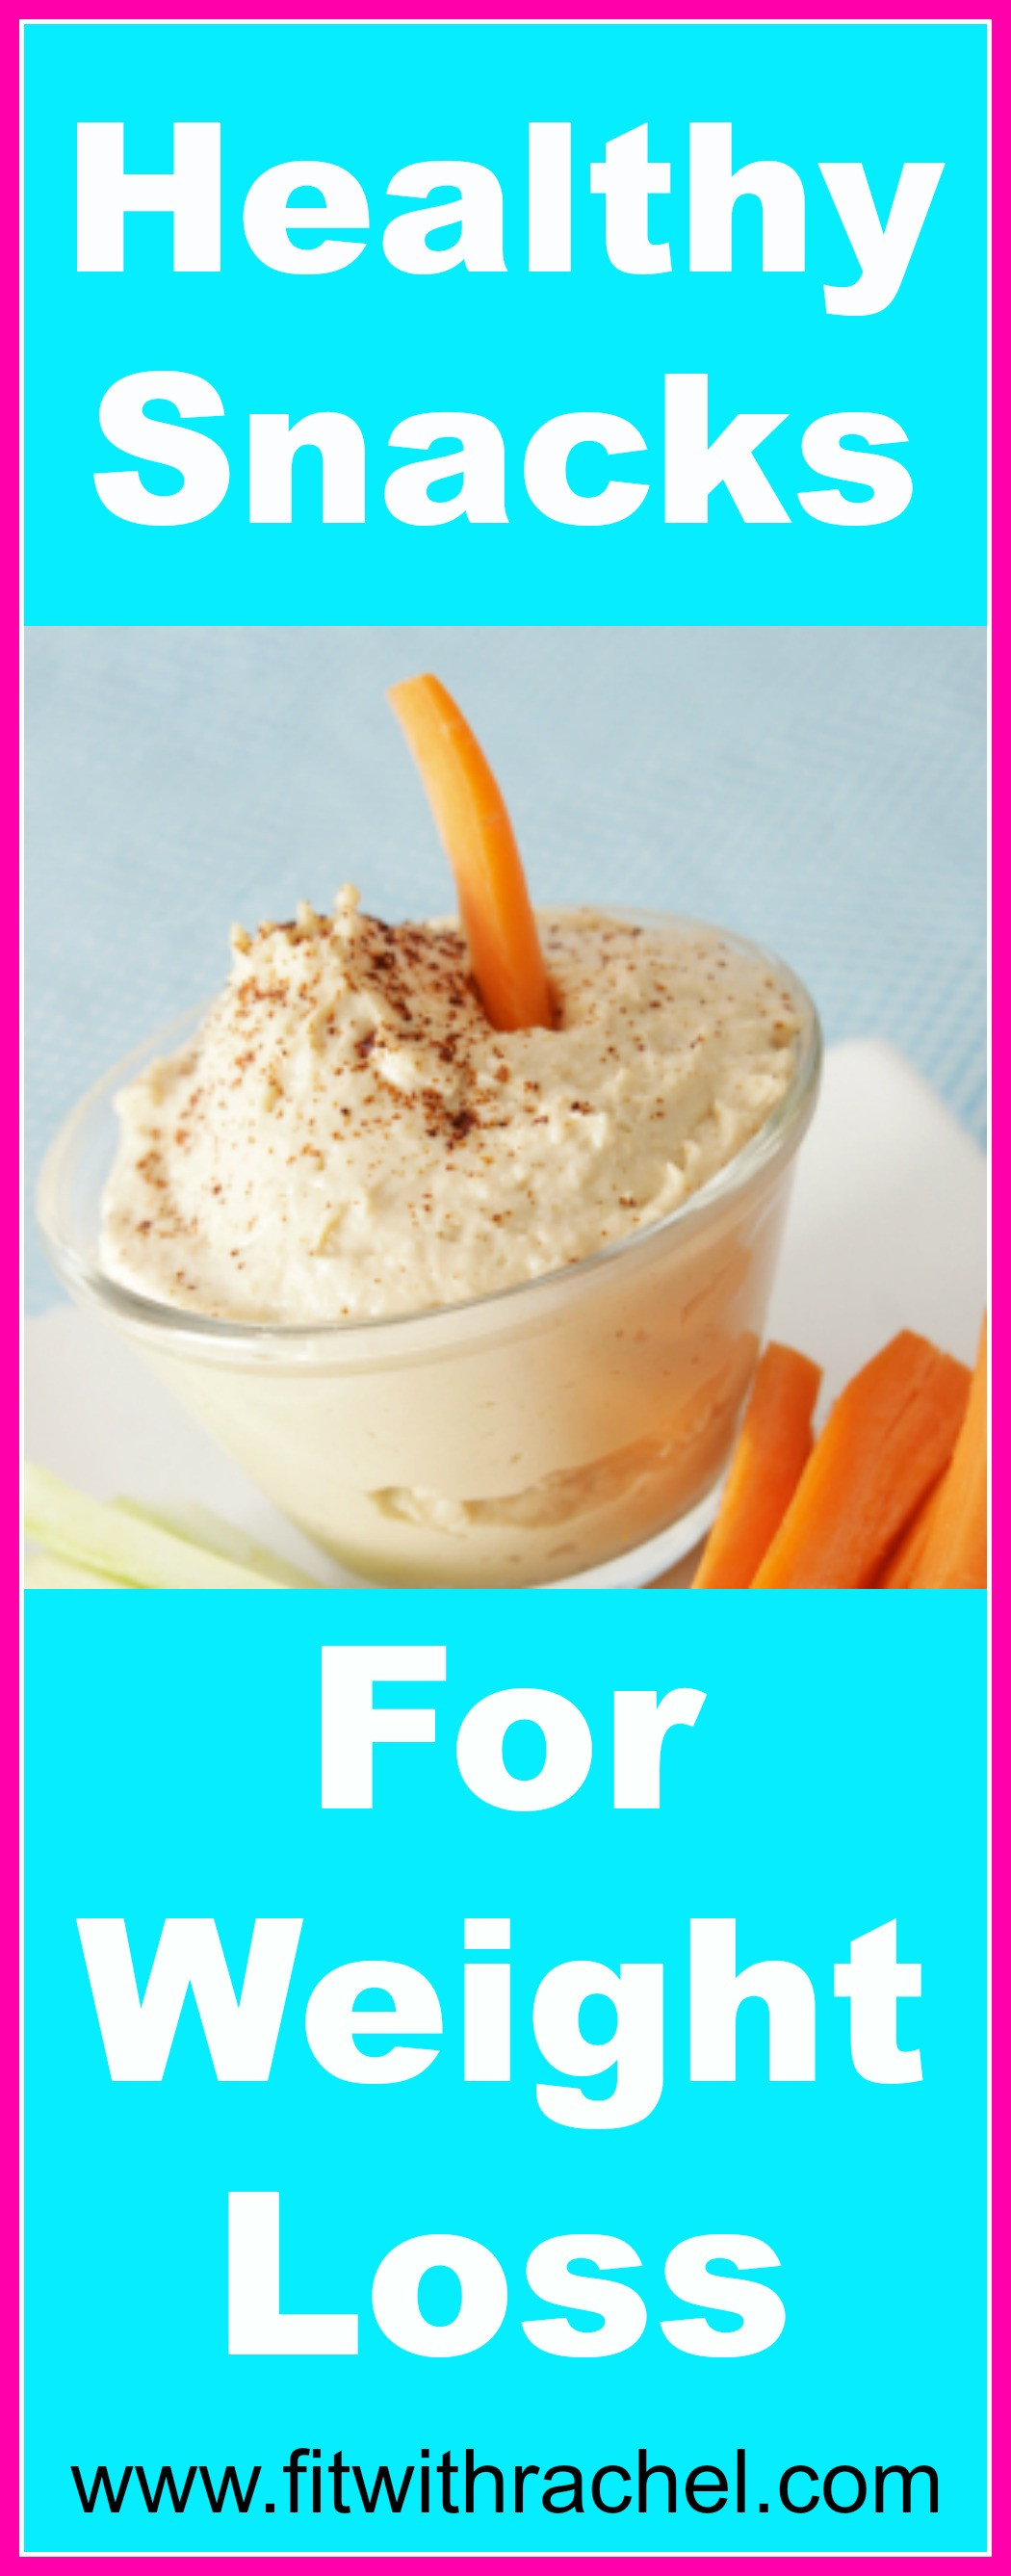 Healthy Snack Recipes For Weight Loss  Healthy Snacks for Weight Loss